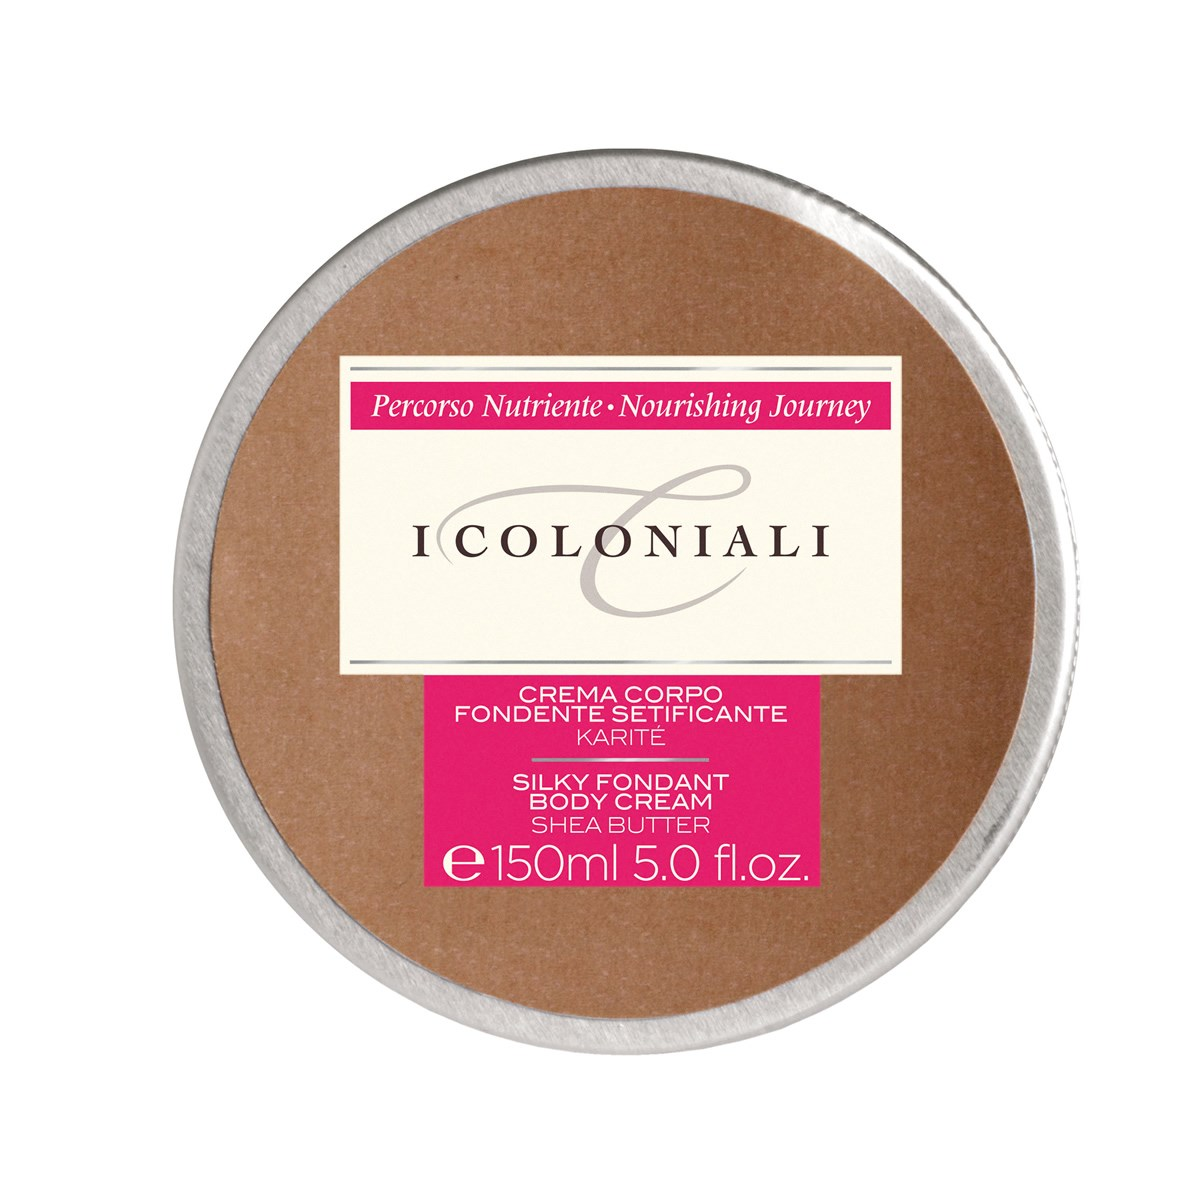 I Coloniali Silky Fondant Body Cream with  Shea Butter